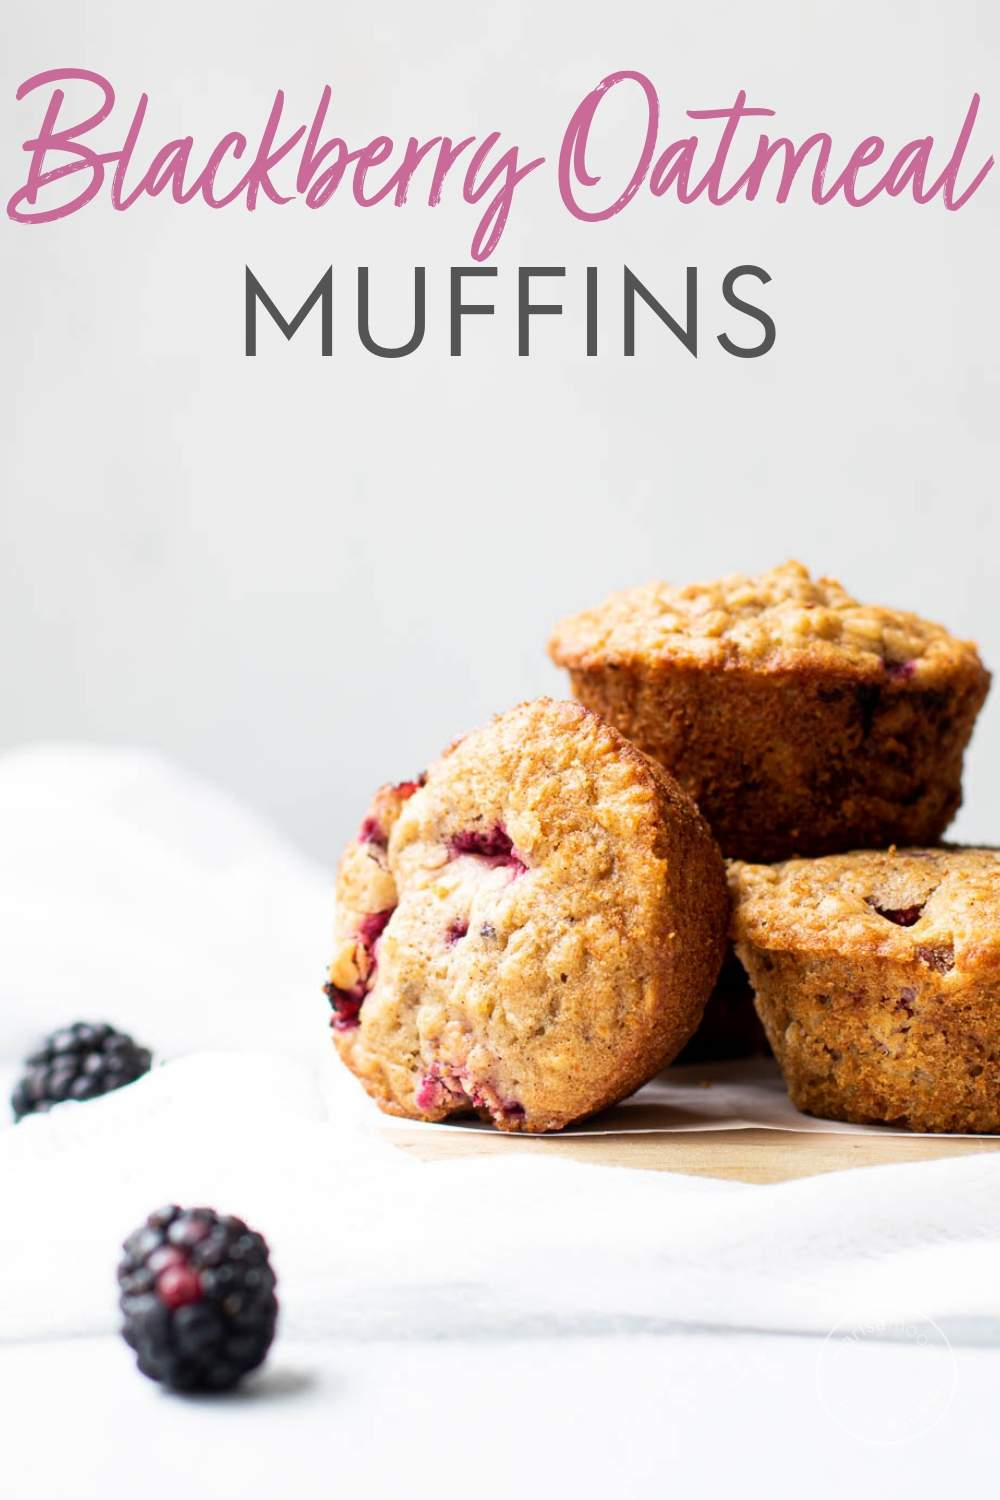 Blackberry Buttermilk Muffins on a white backdrop